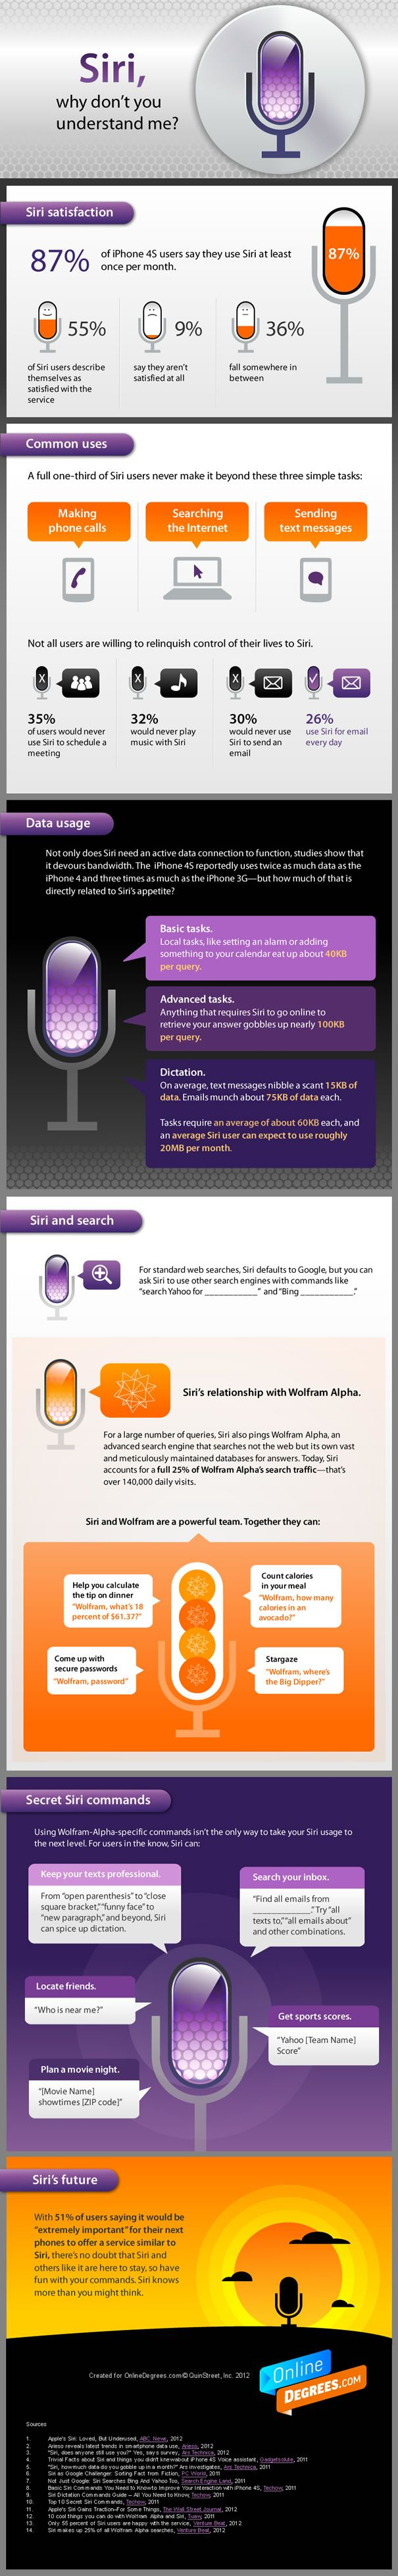 Siri, Why Don't You Understand Me? [INFOGRAPHIC] siri why dont you understand me